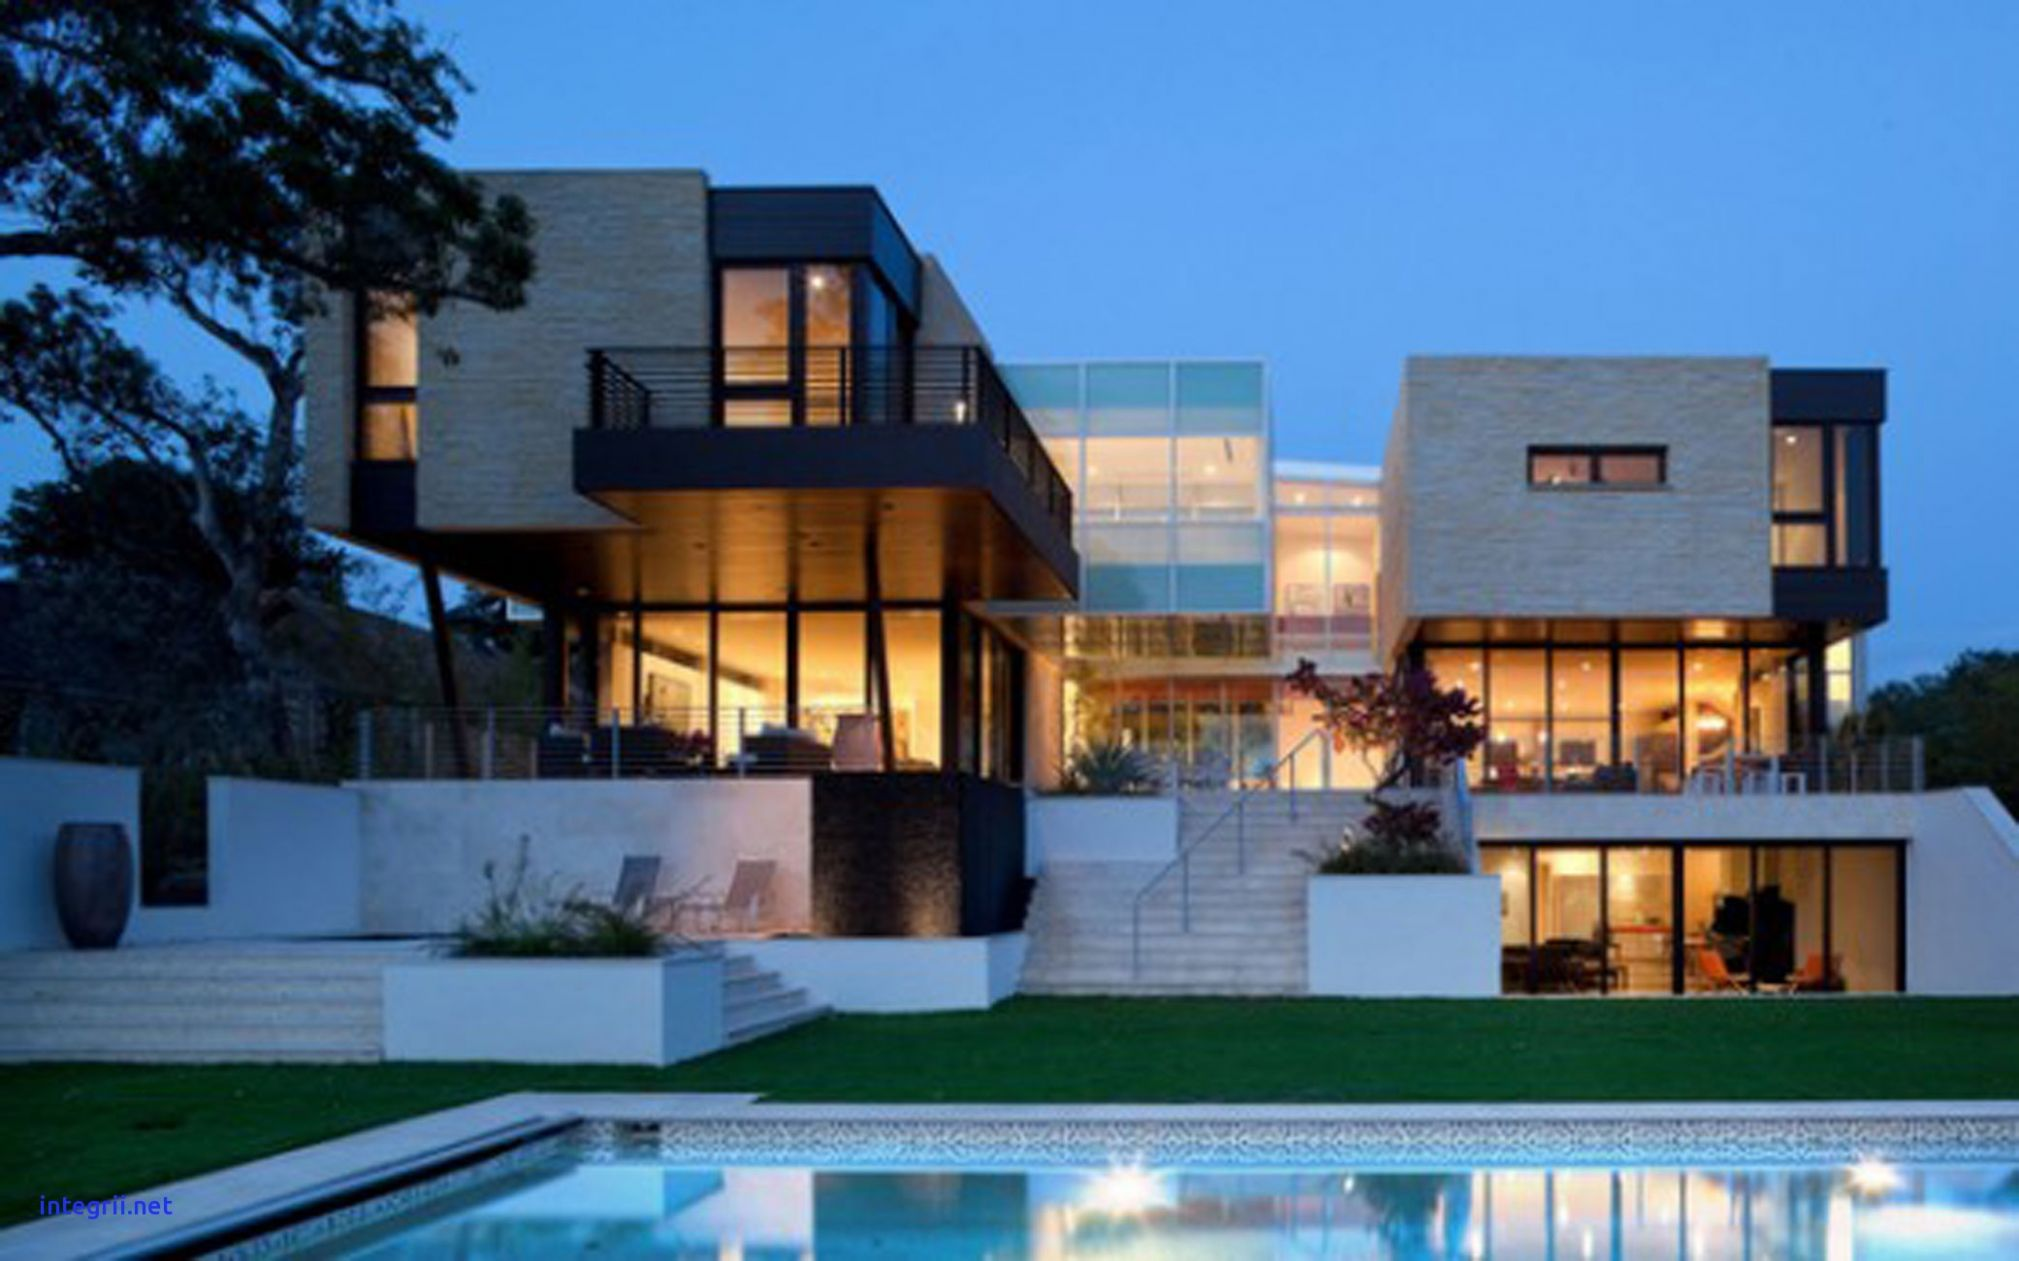 Inspirational Modern House Images Collection Stunning Ideas ...